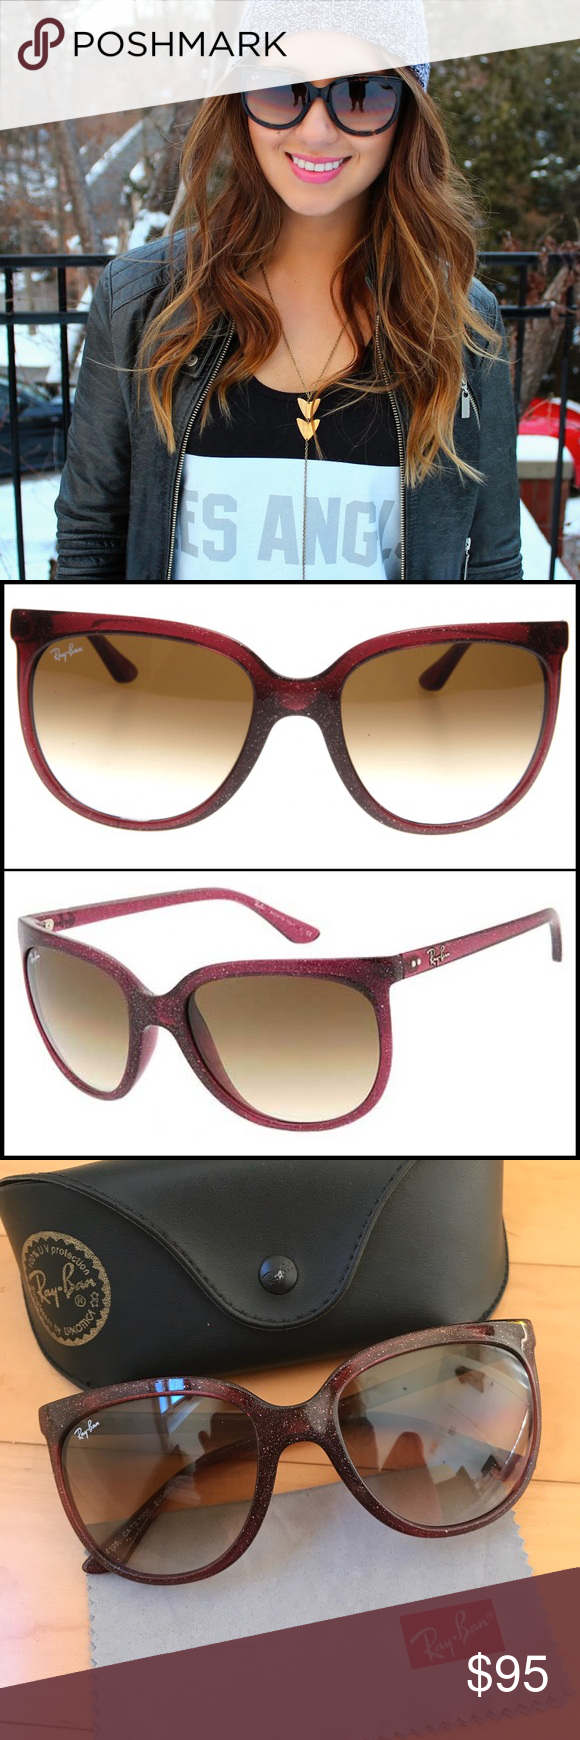 2f4bc2a24eb6e Ray-Ban Cats 1000 Glitter Sunglasses The Ray-Ban collection for this season  calls